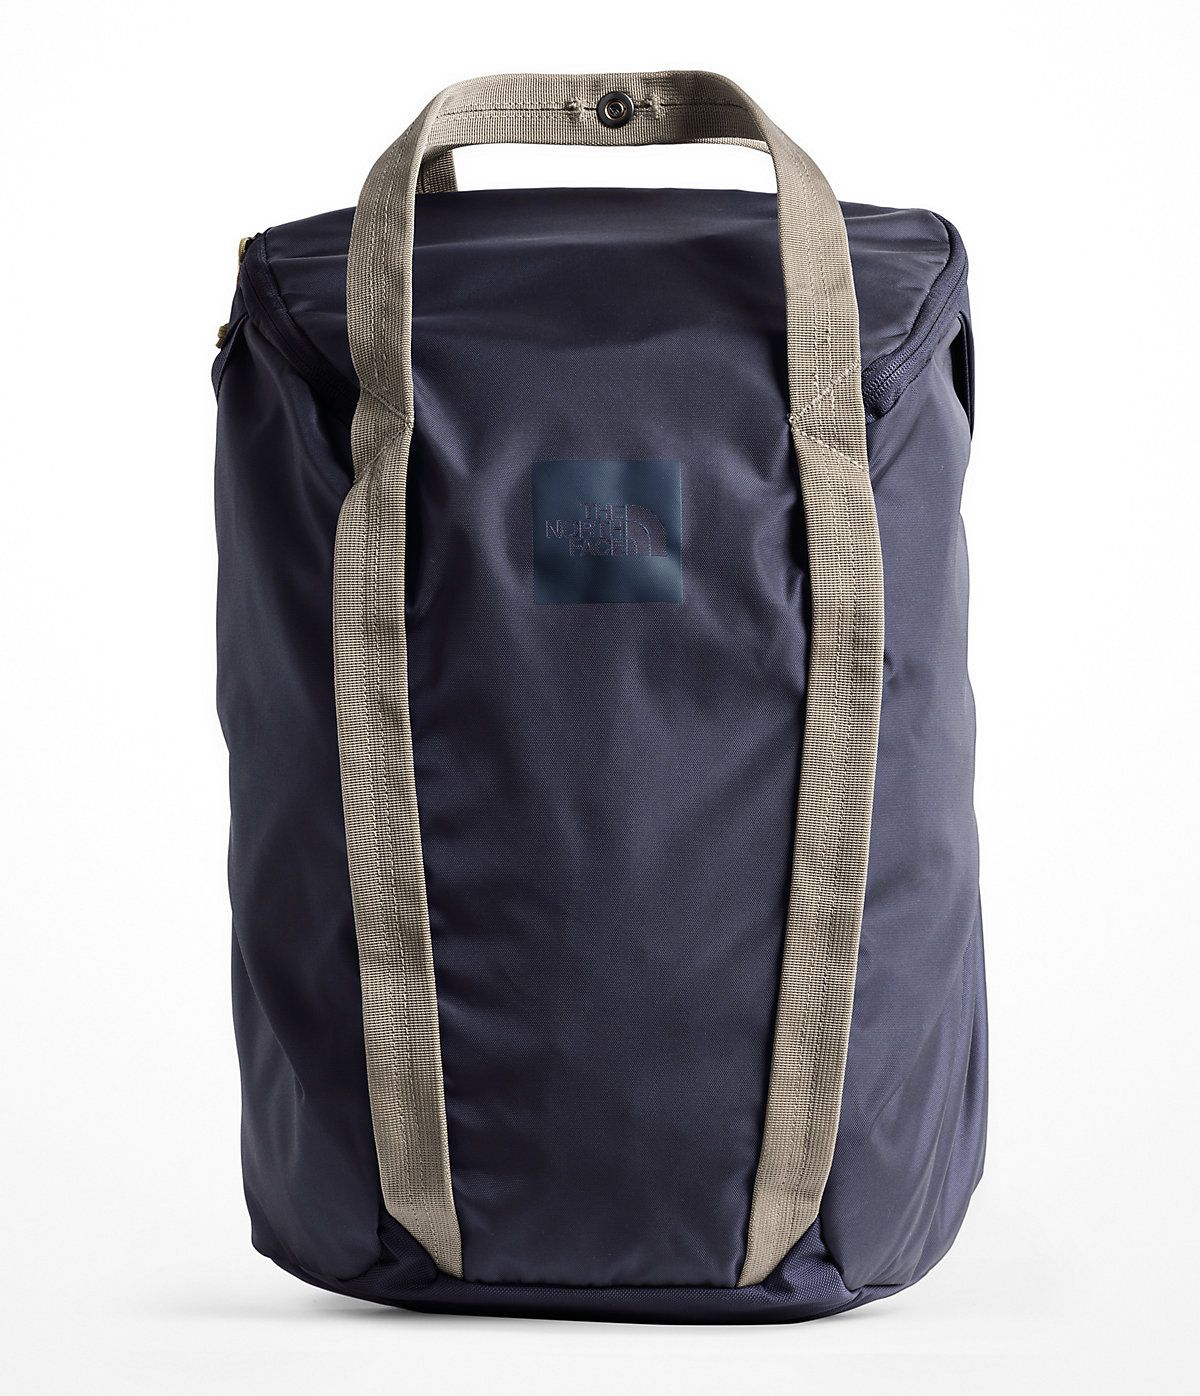 49ecdb8ea The North Face Instigator 20 Backpack in 2019 | Products | Backpacks ...